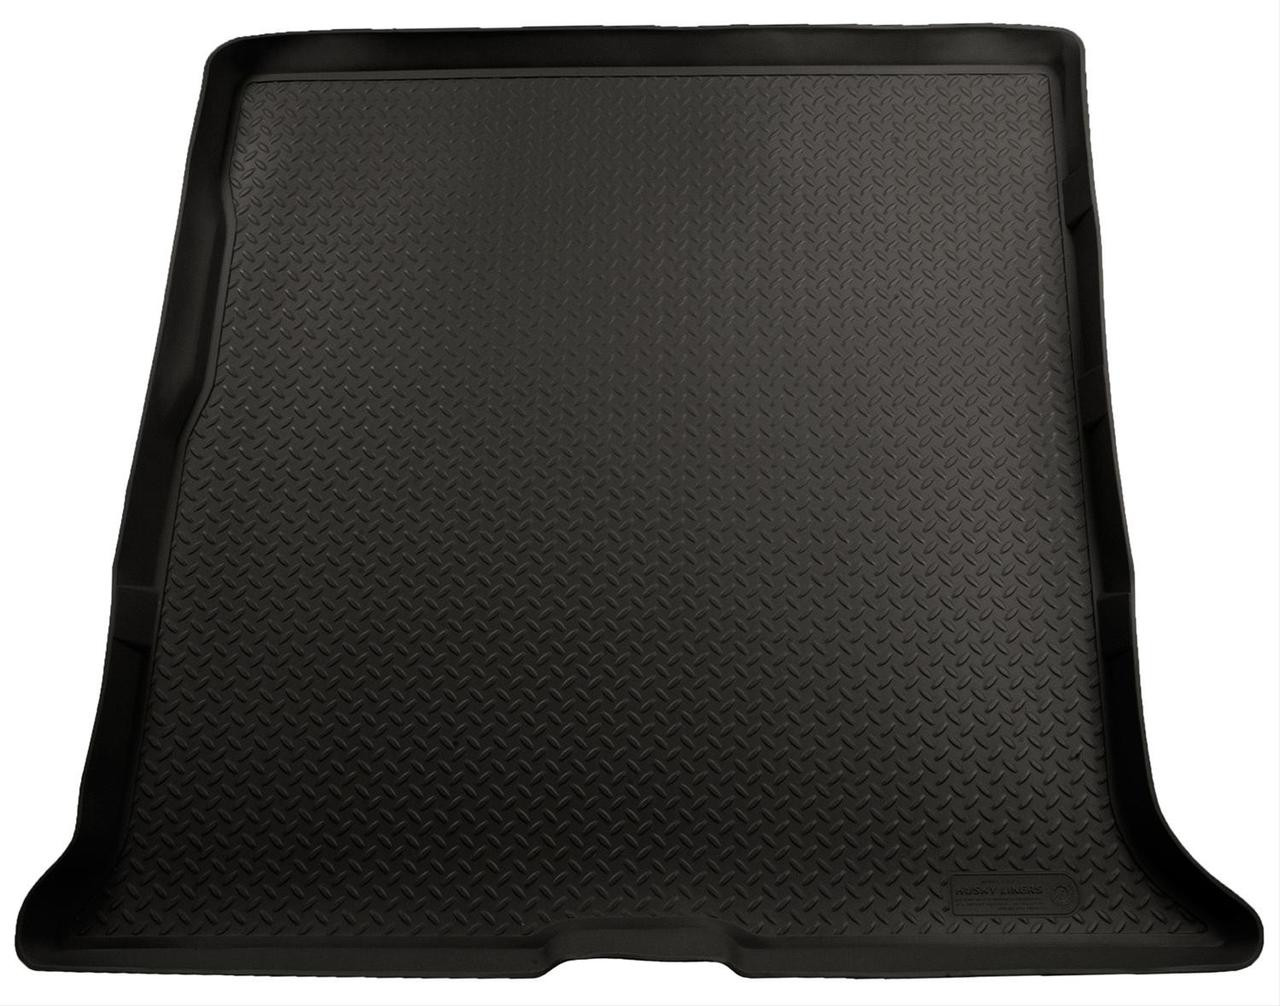 03-14 EXPEDITION/NAVIGATOR (CARGO LINER BEHIND 2ND SEAT OVER FOLDED FLAT 3RD SEAT) REAR LINER BLACK